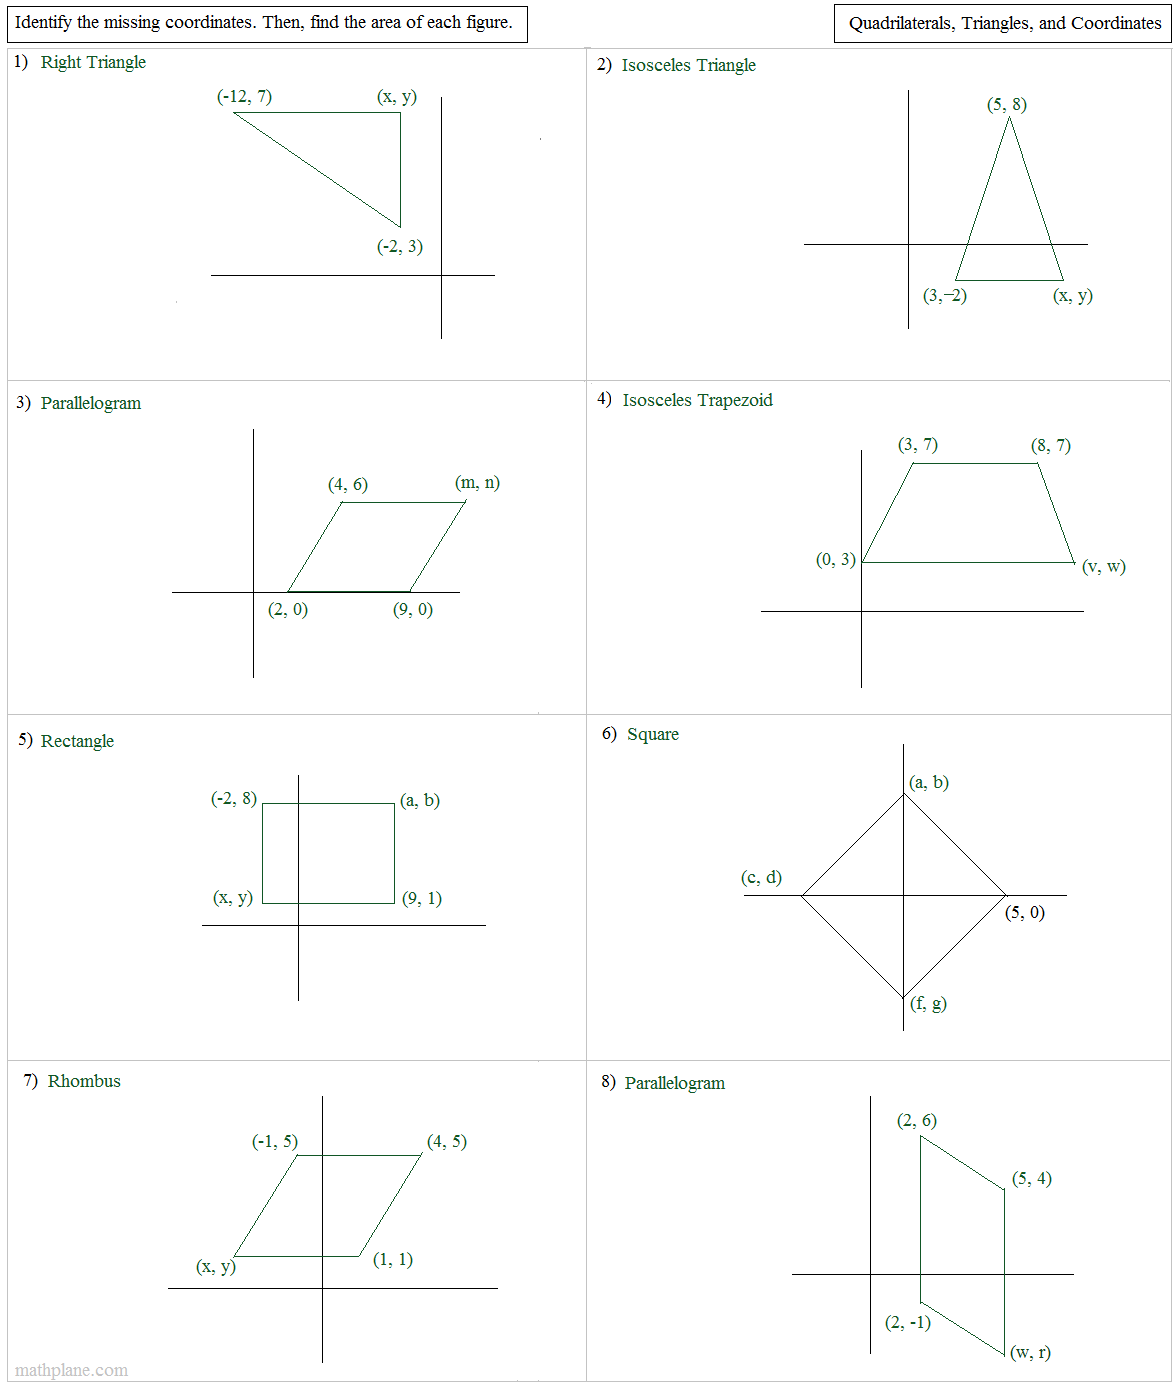 Download Free Complete Geometry Special Quadrilaterals .pdf file